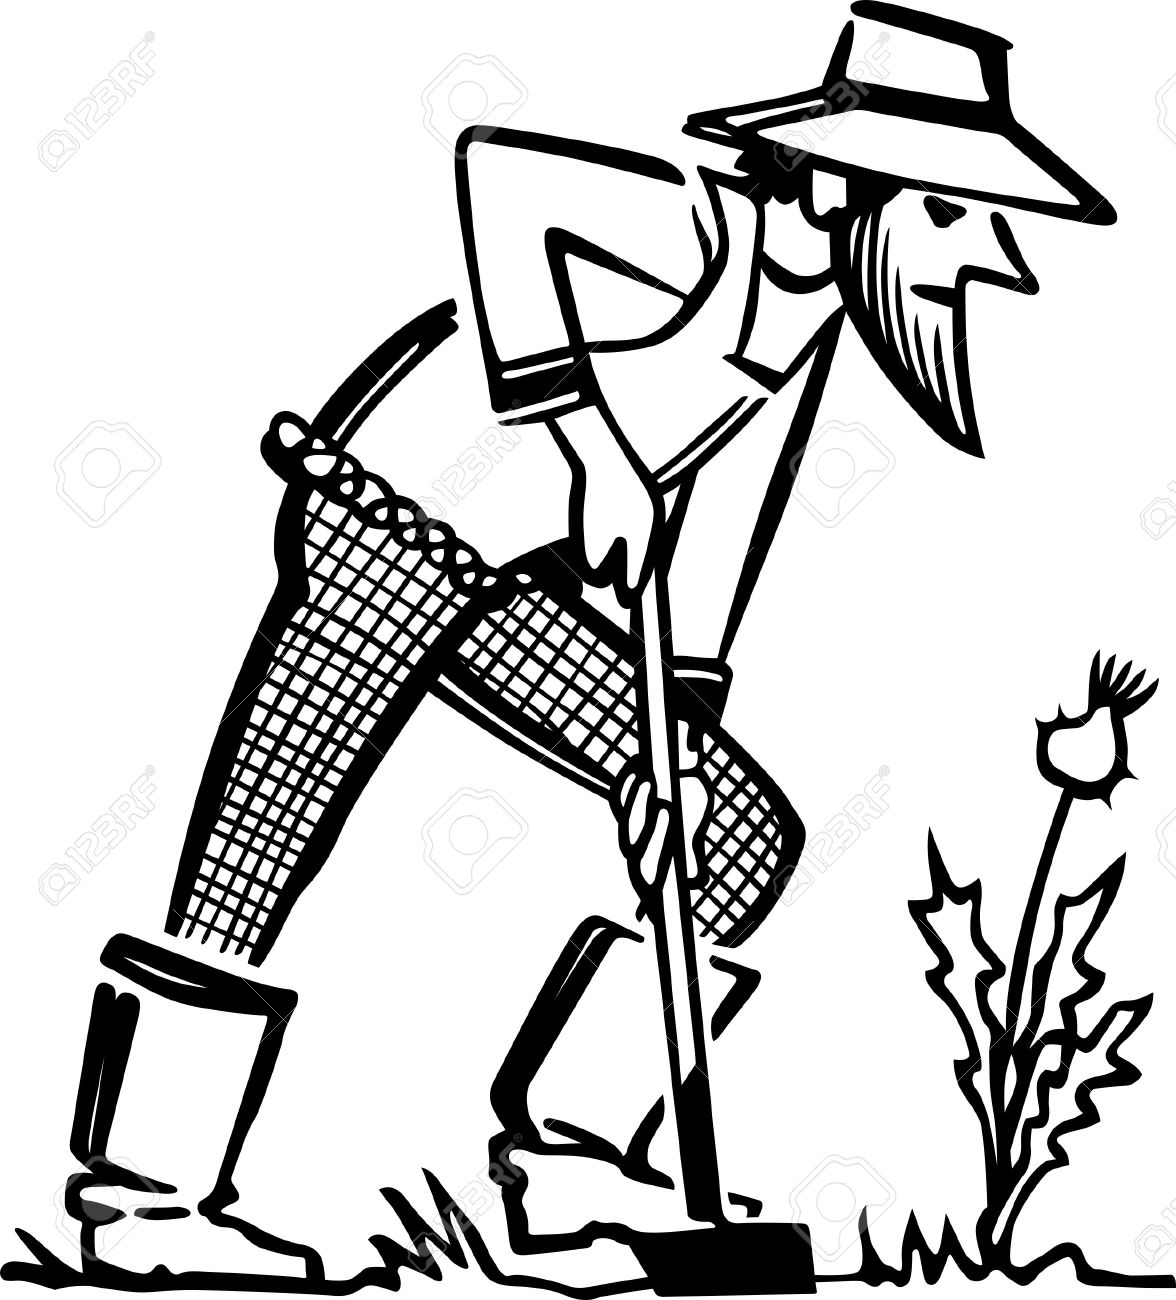 farmer in the dell coloring pages | Farmer Drawing Images at GetDrawings.com | Free for ...